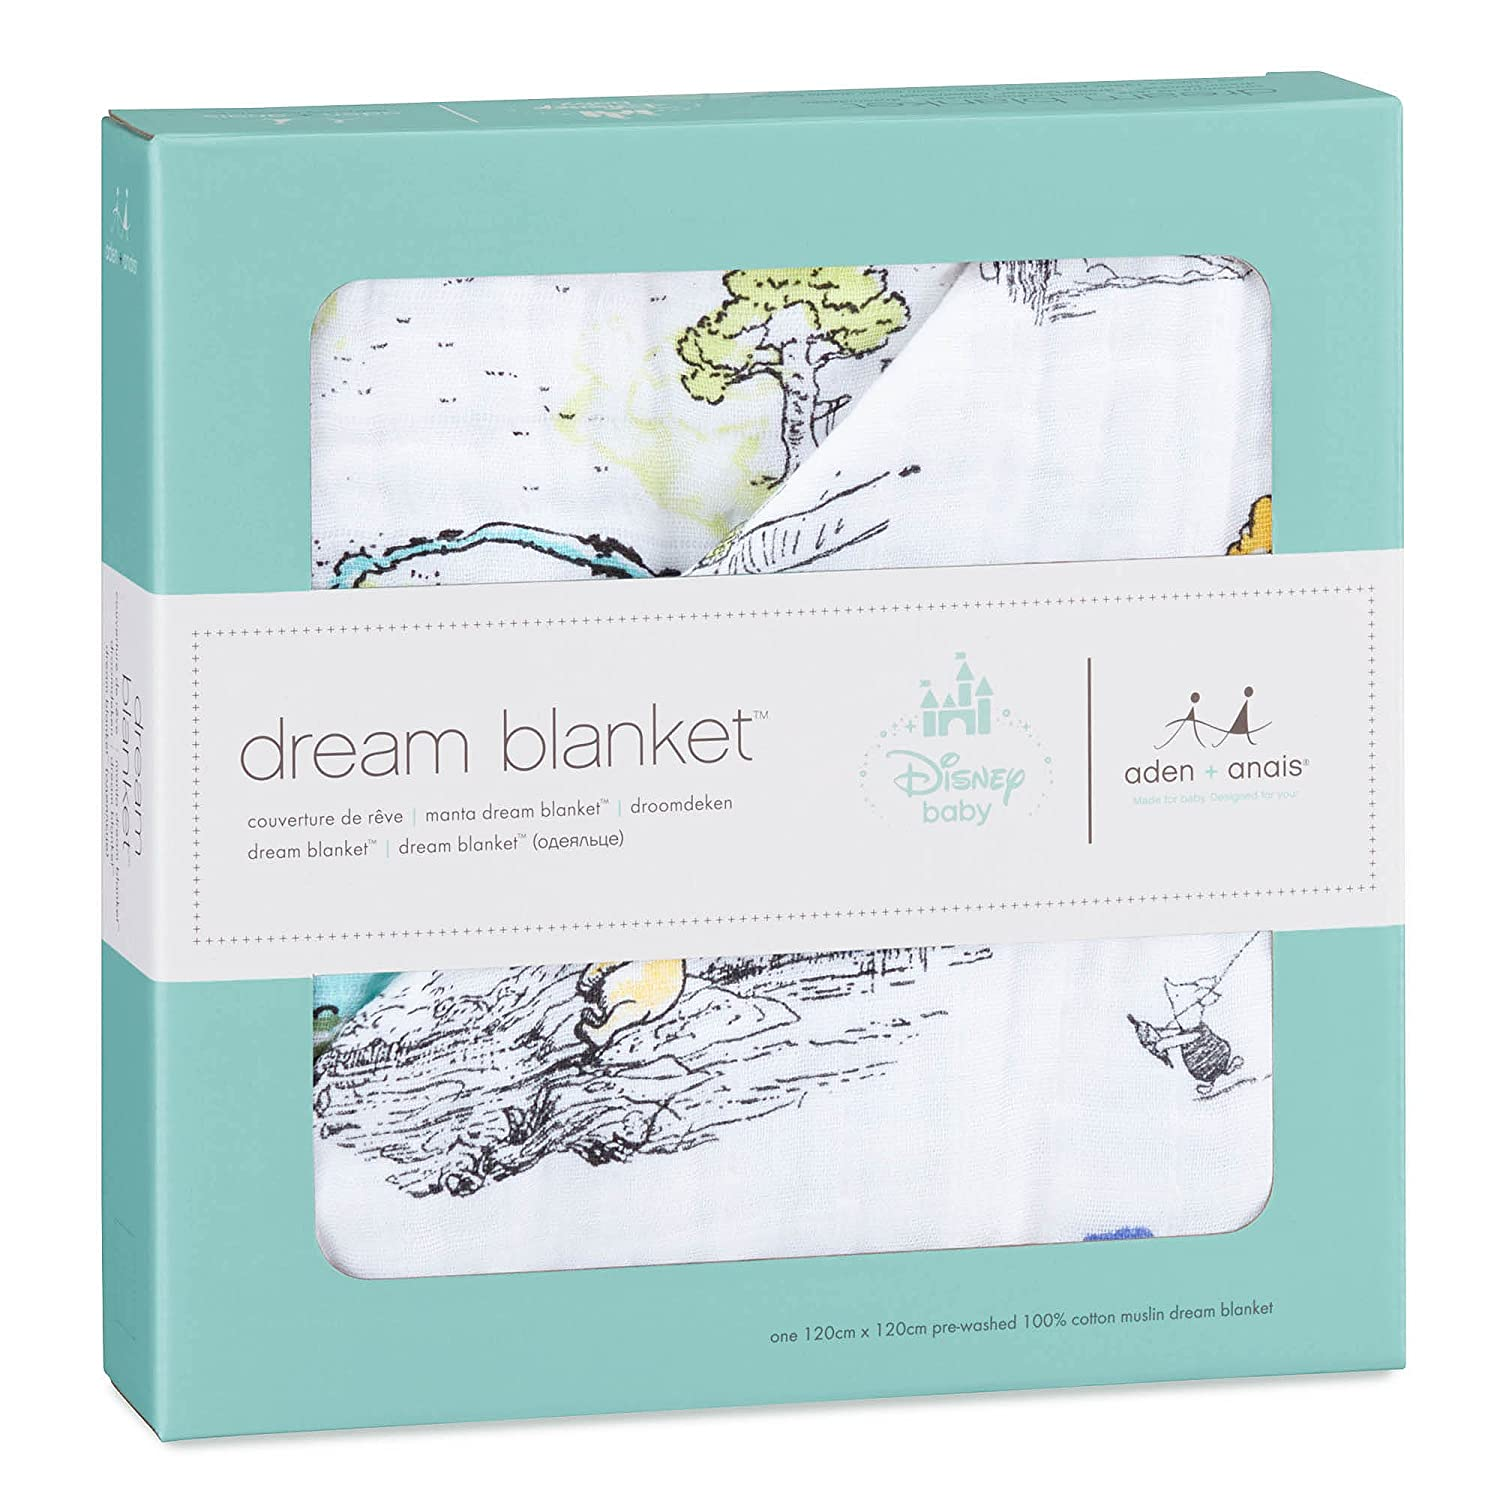 1f27f7bda908 aden + anais Disney baby dream blanket